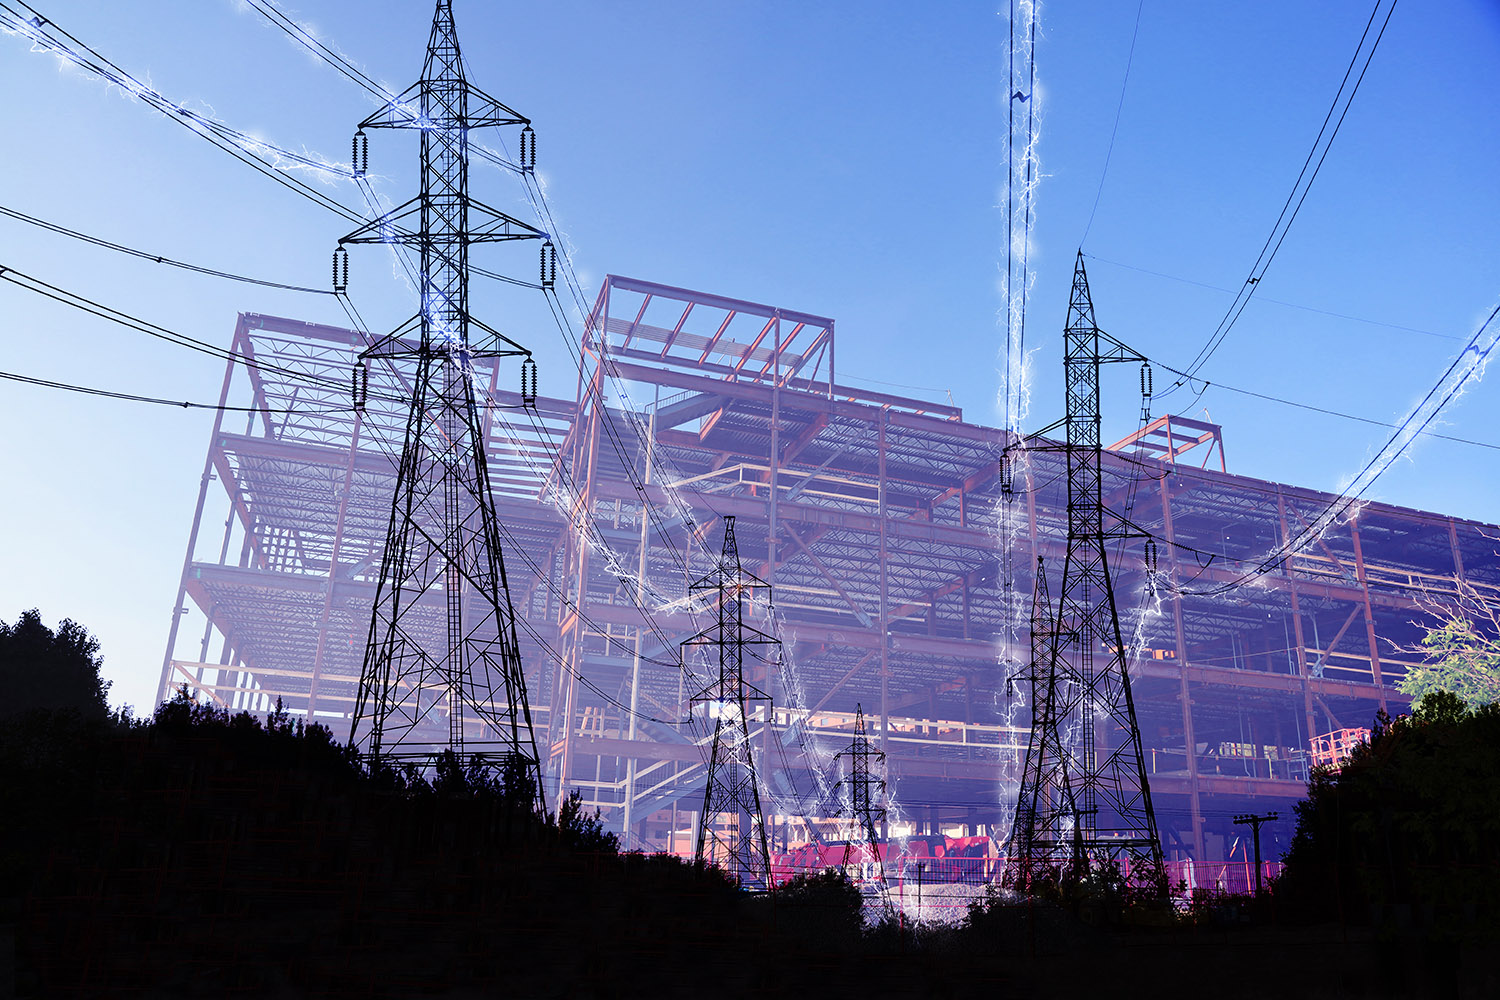 Construction Industry Electrification in Blue - RF Stock Photo